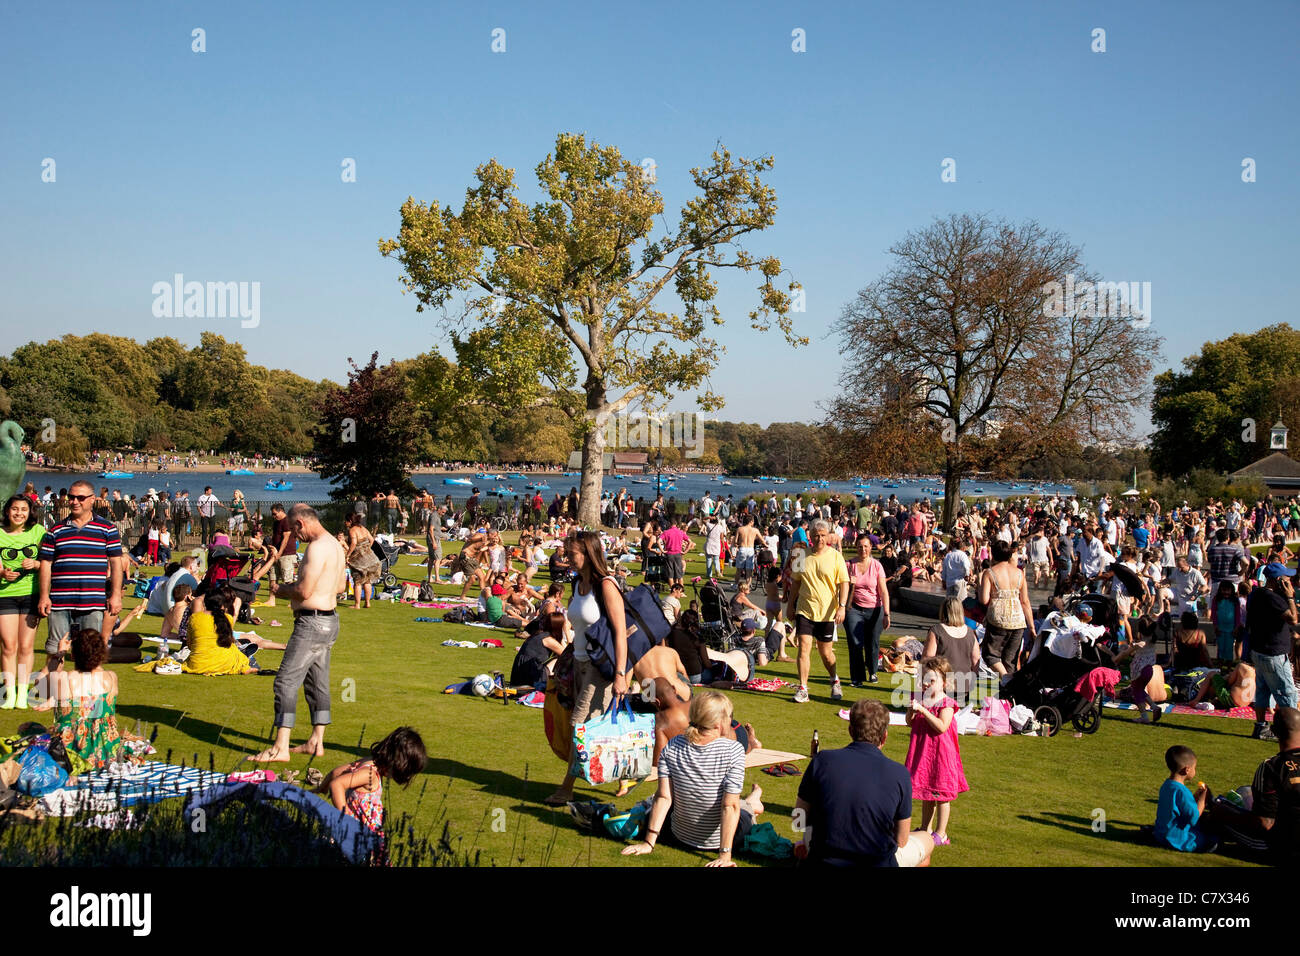 Summertime heat wave hits London and the UK. People out sitting in the sun in Hyde Park. - Stock Image